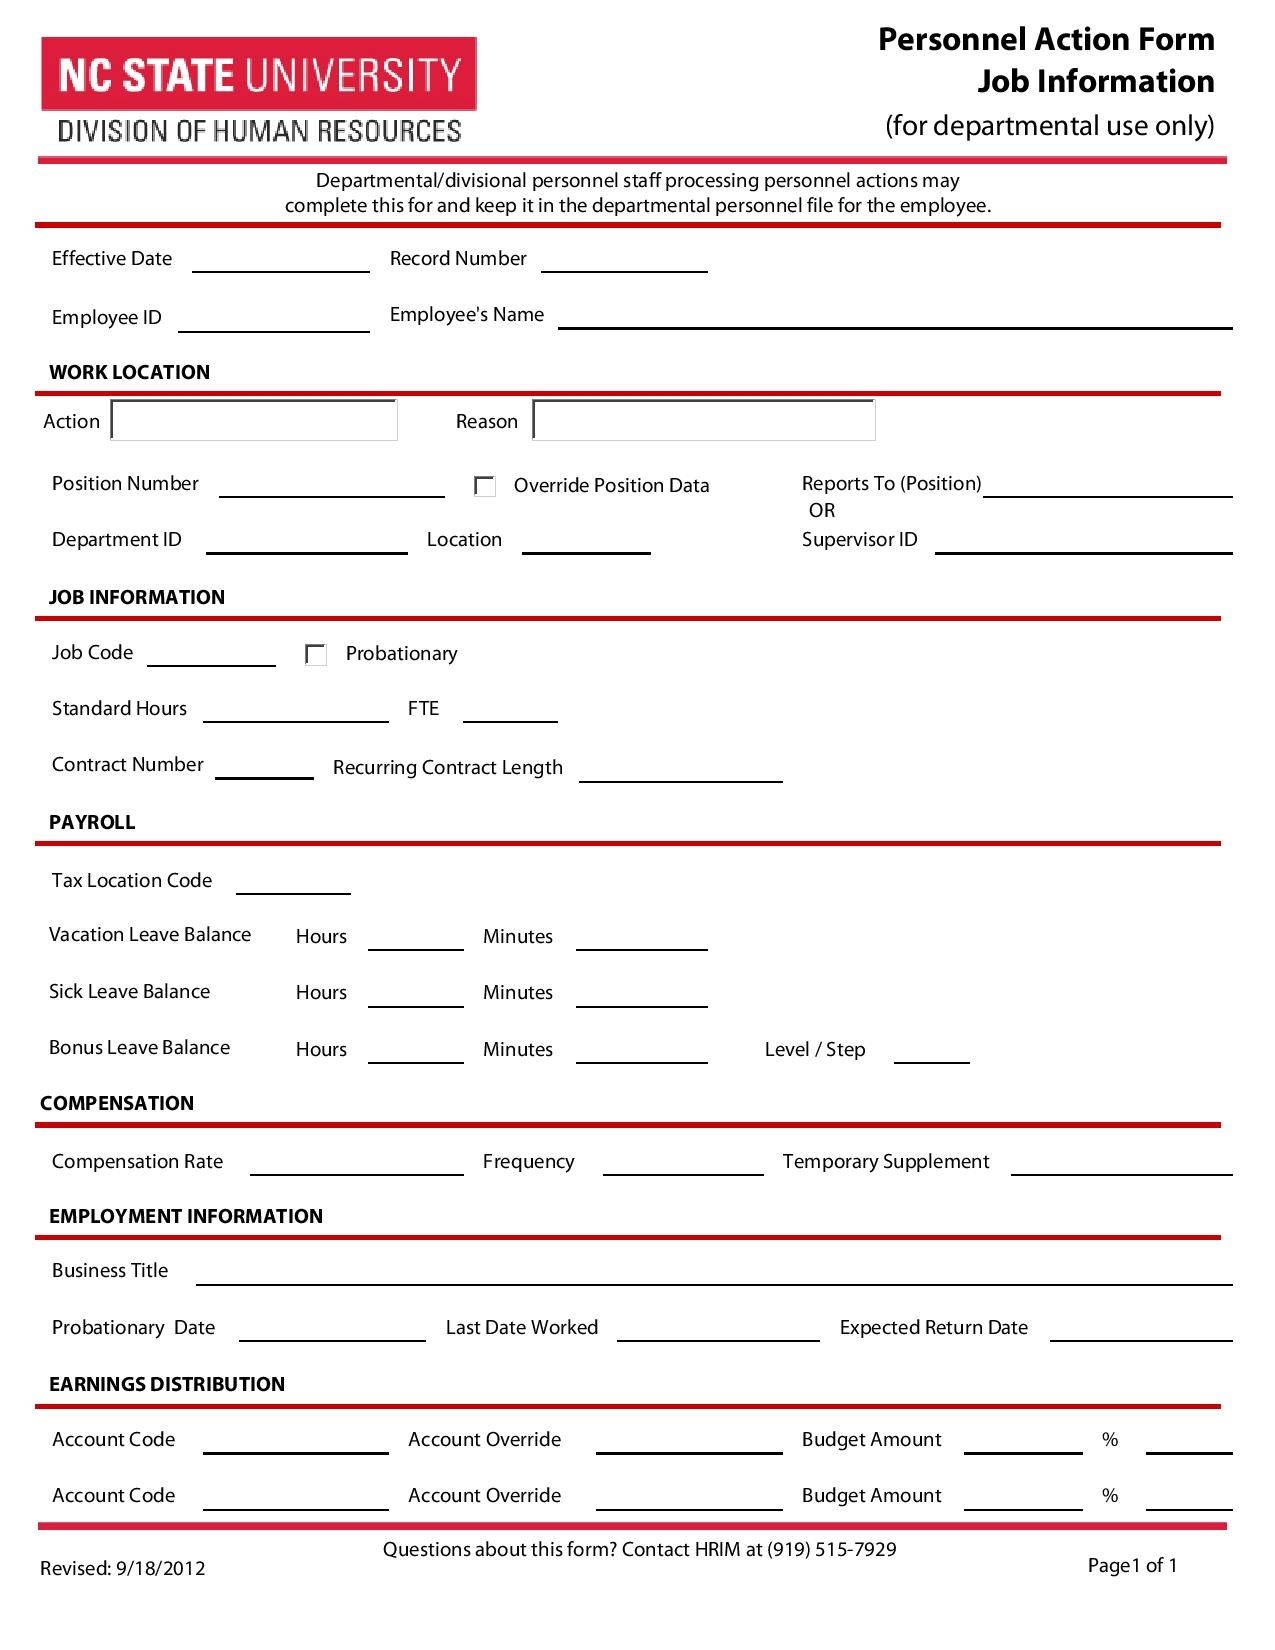 personnel action form job information page 001